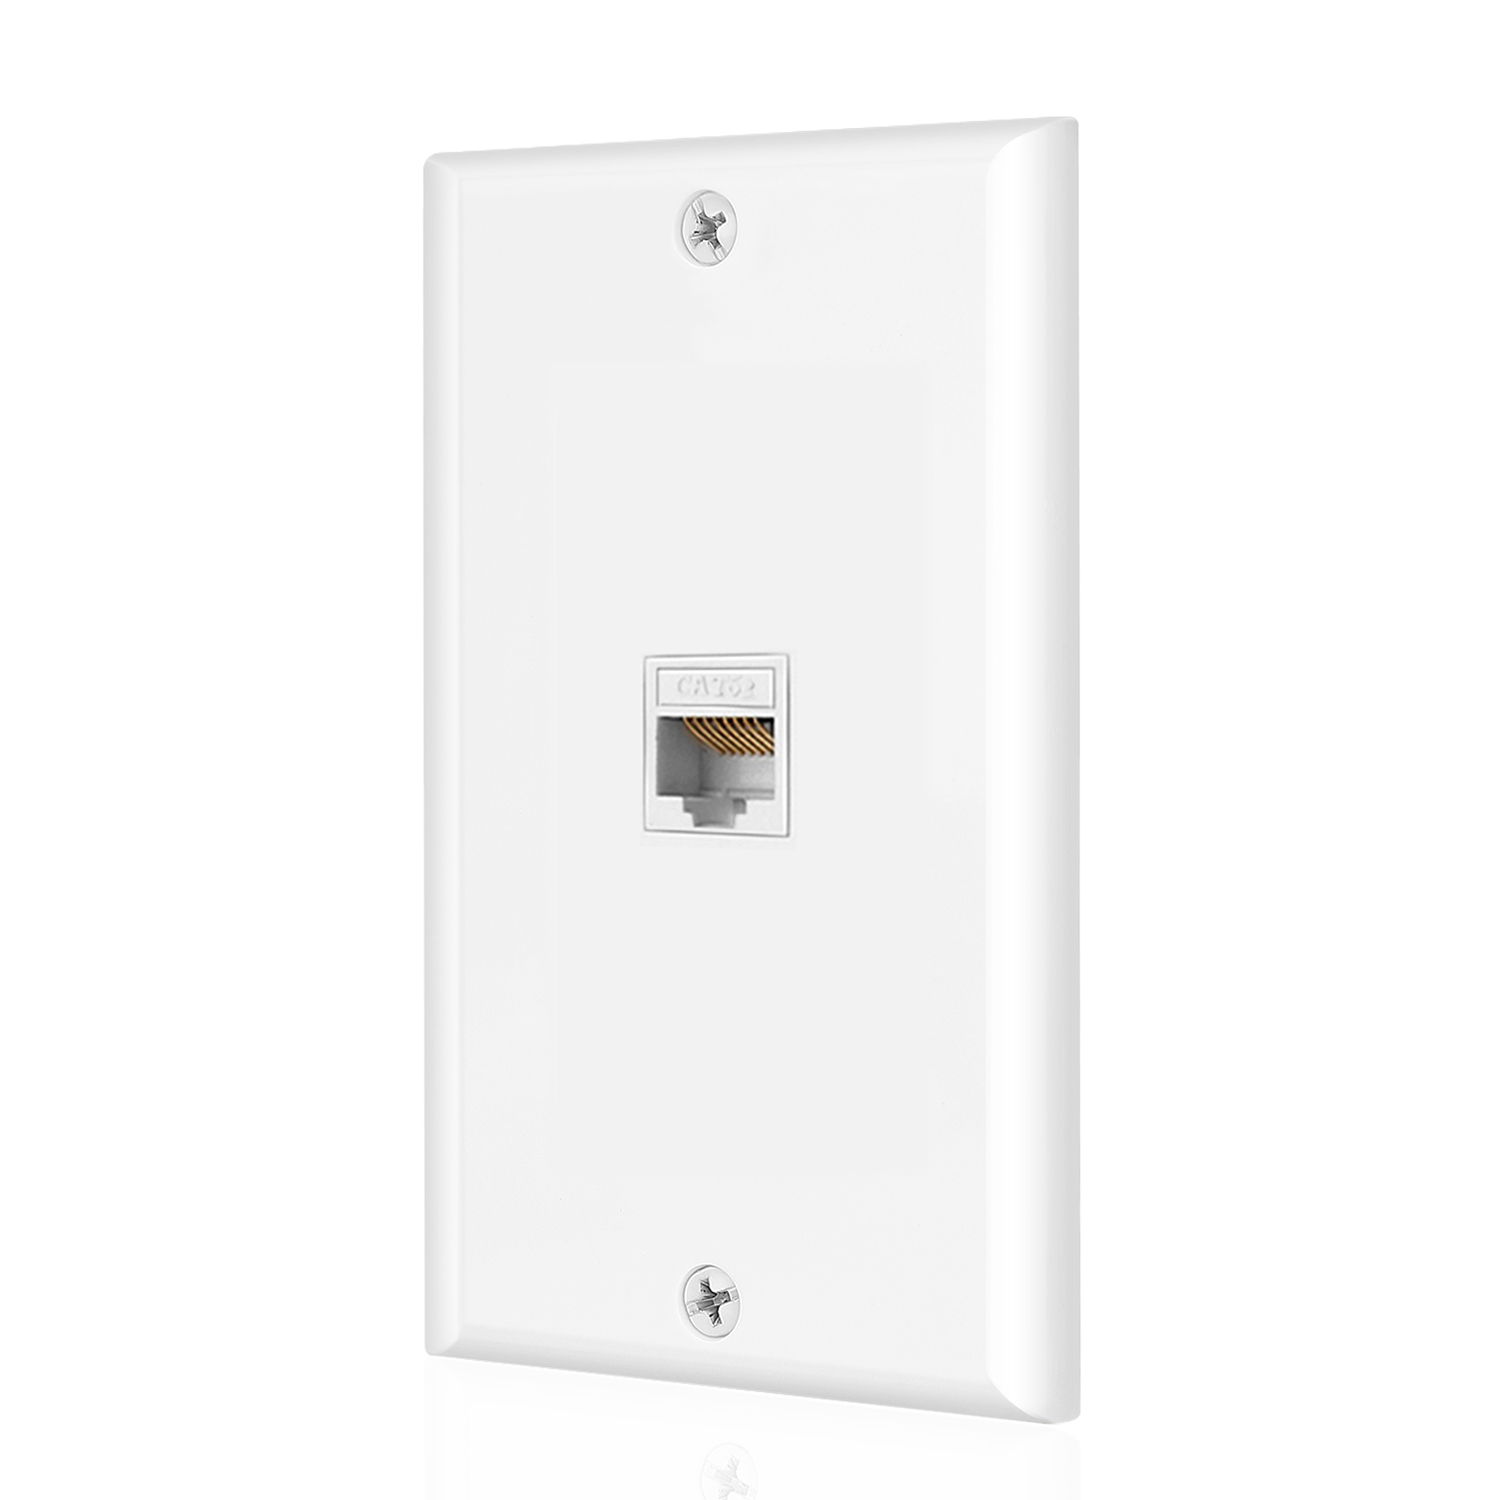 Ethernet Cat6 Wall Plate 1 Port Single Gang Plug W Low